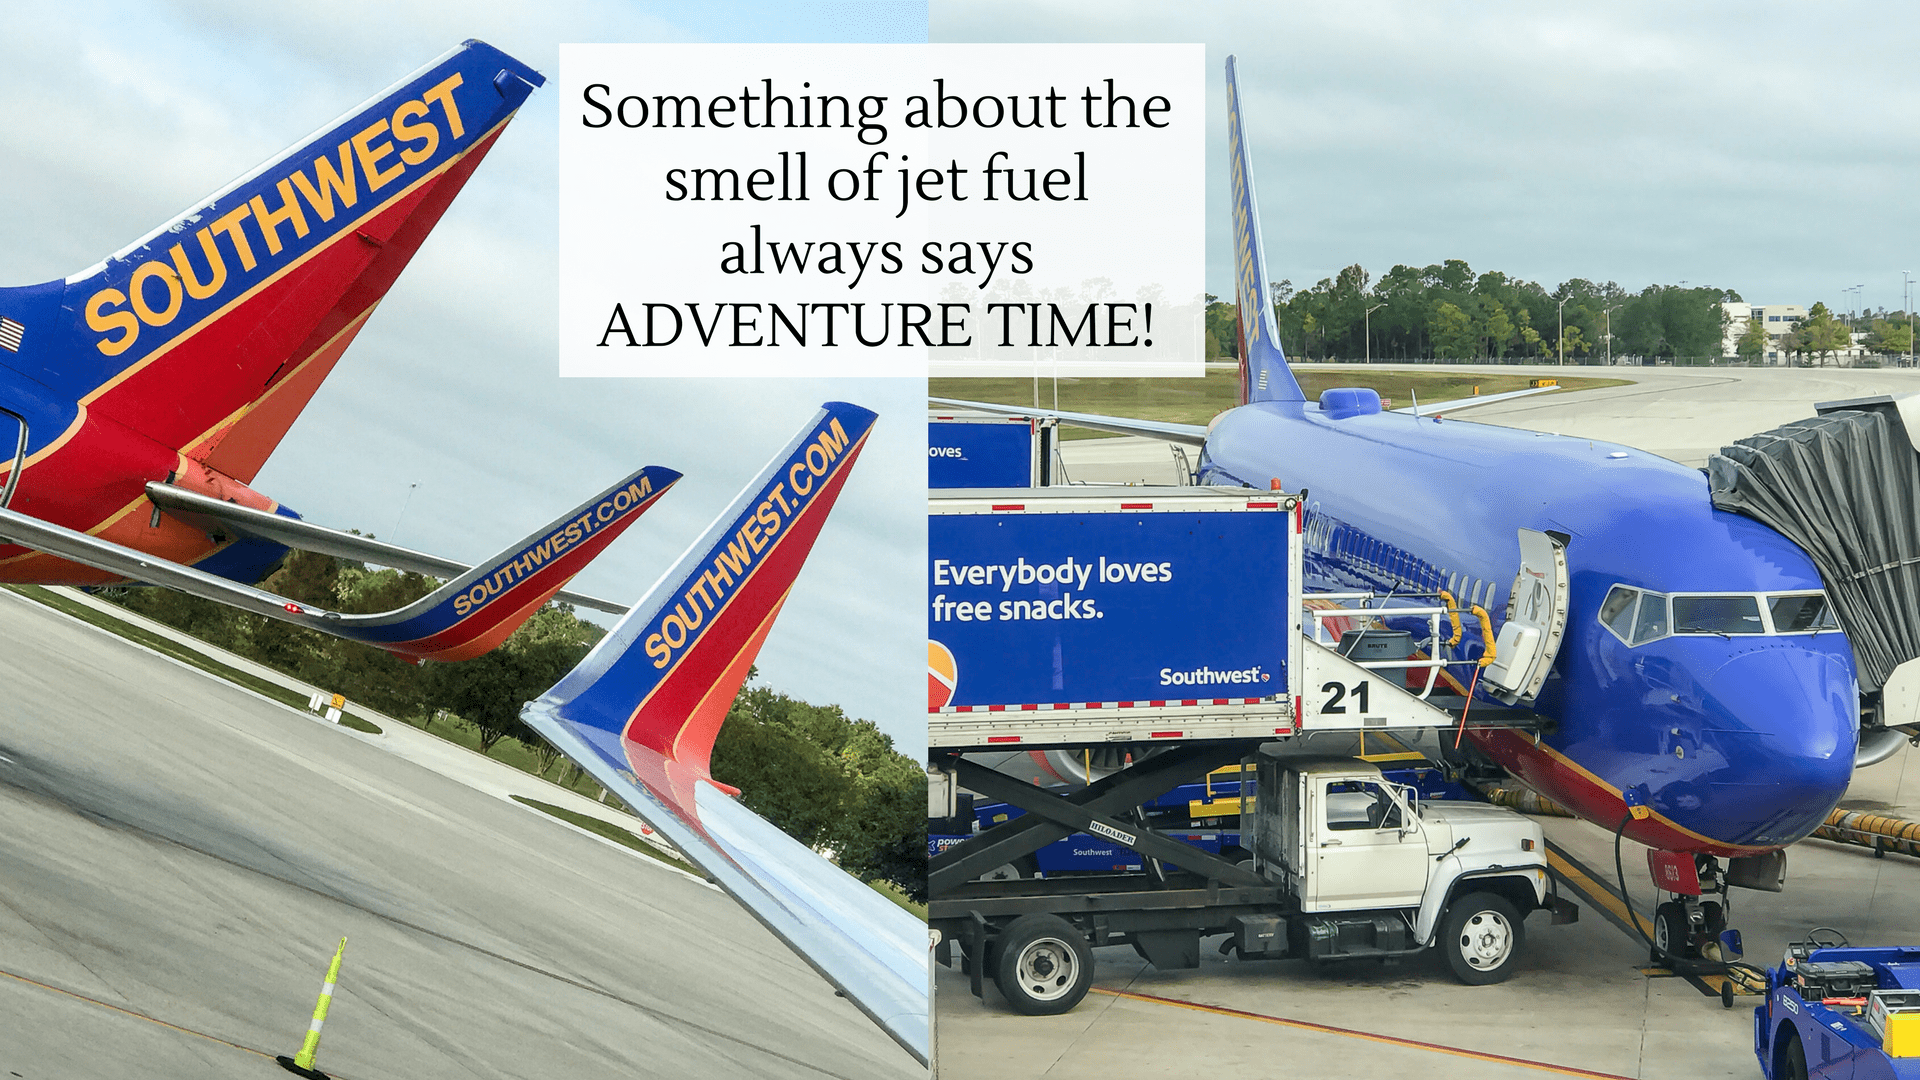 Something about the smell of jet fuel always screams adventure